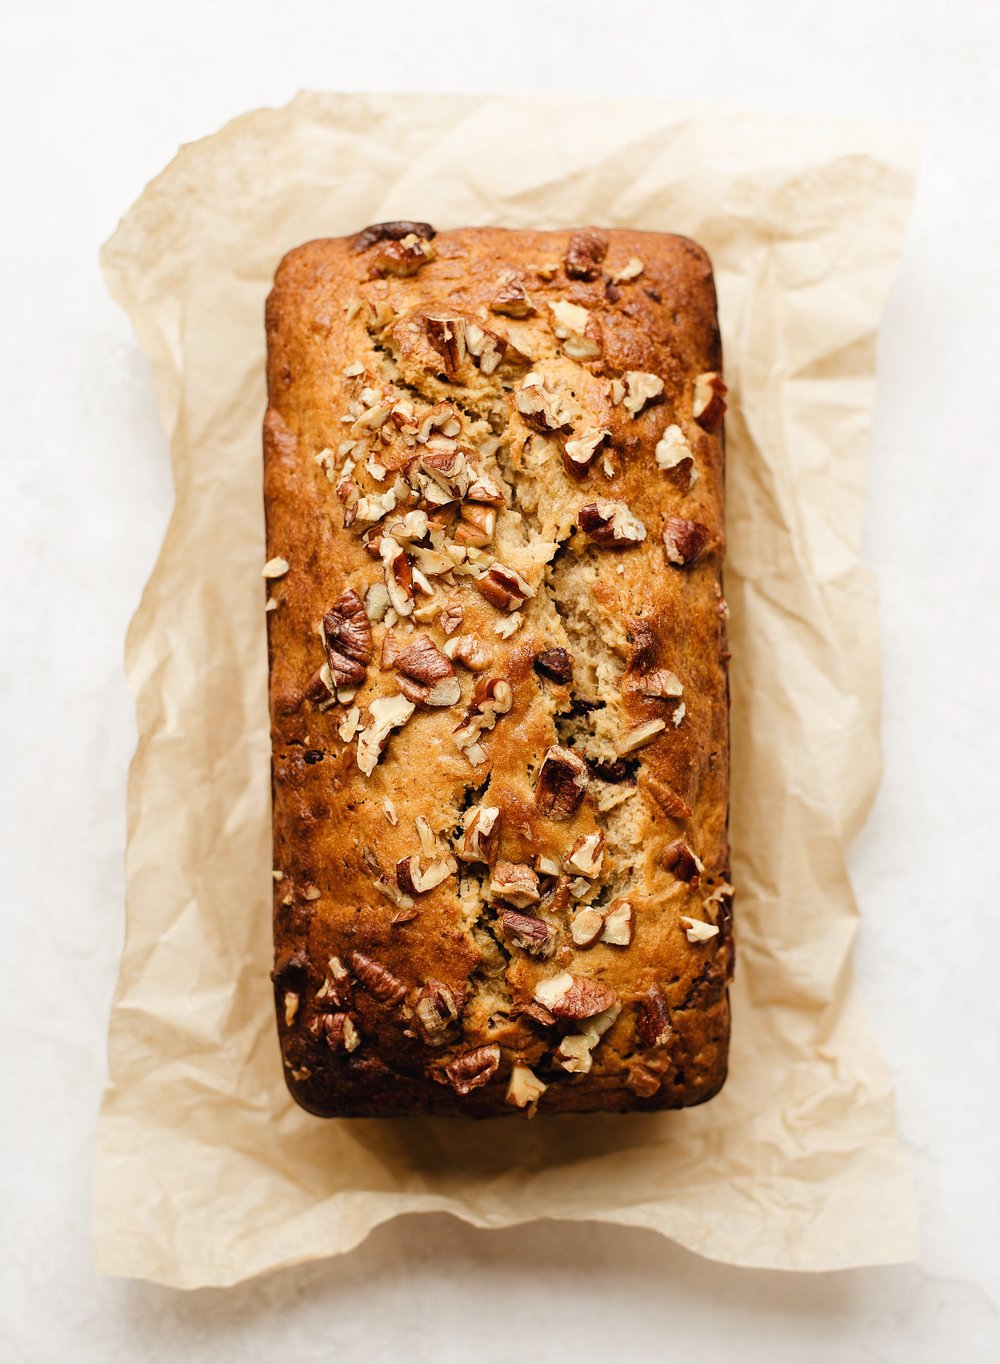 Banana Bread Whole.JPG